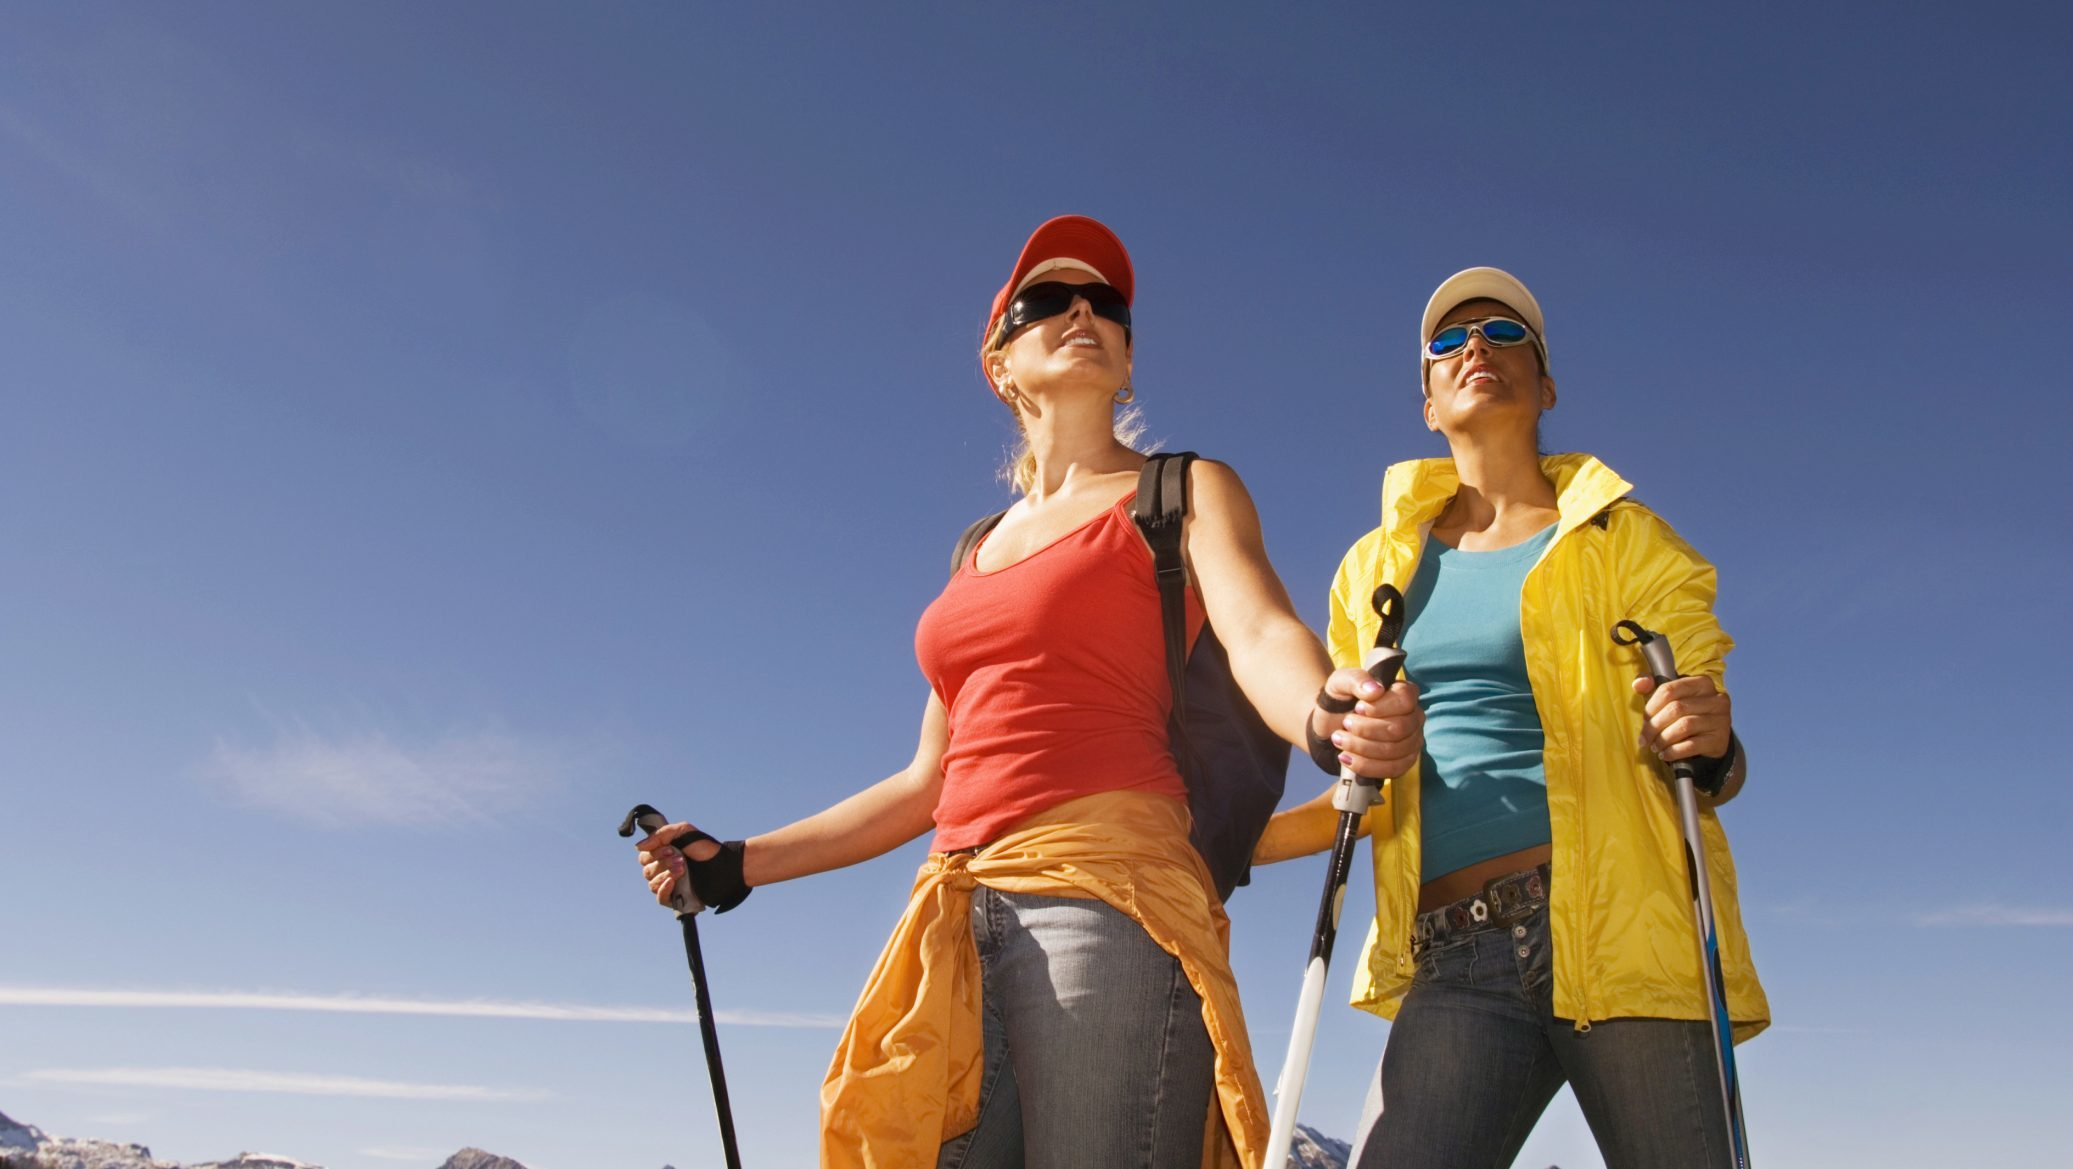 Nordic walking has been identified as one sport which might attract younger women.